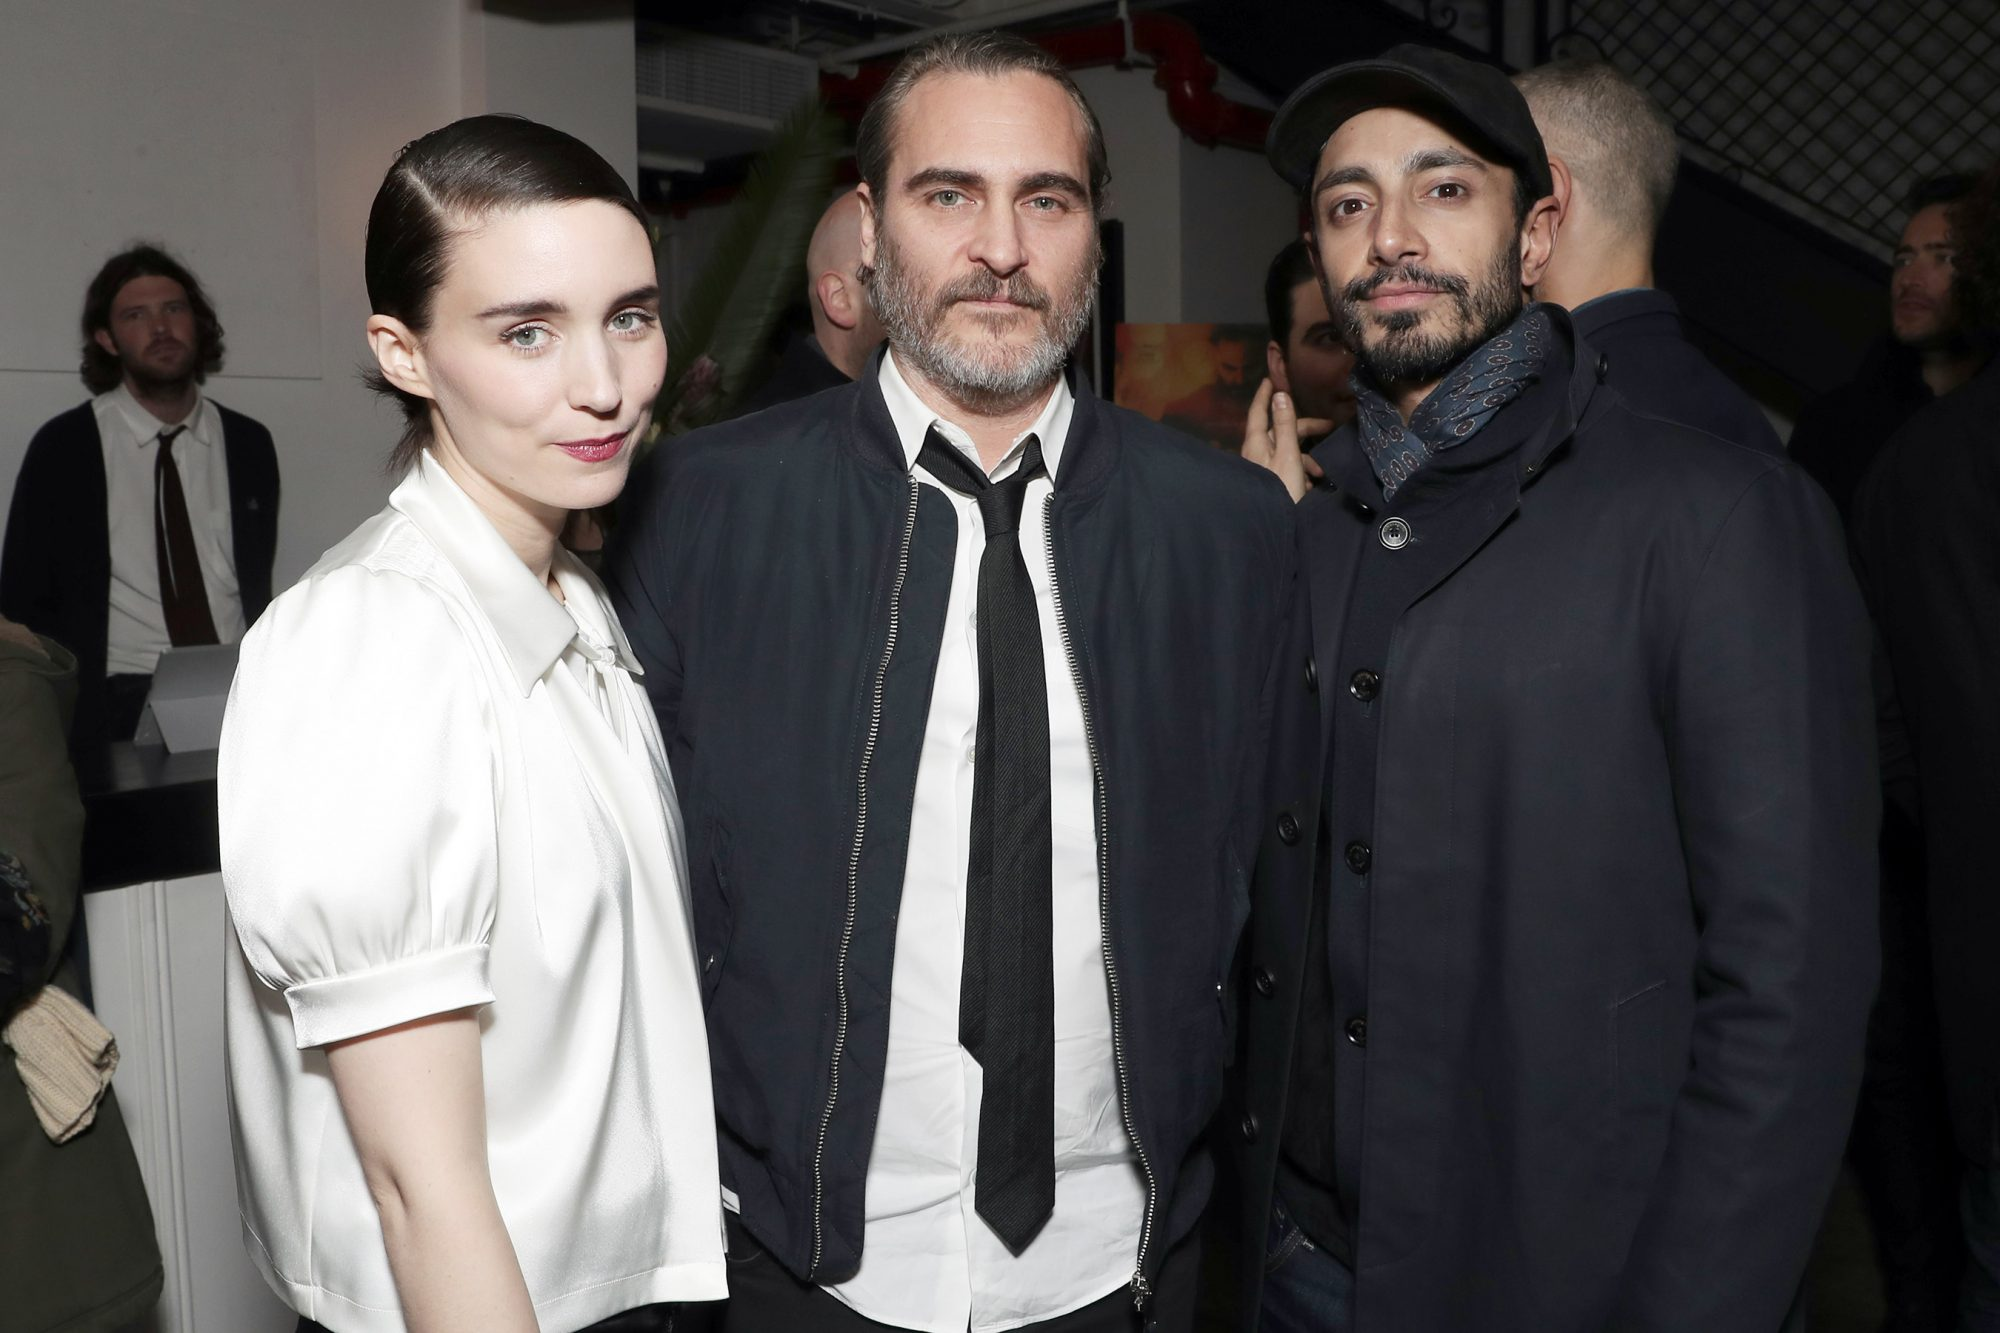 'You Were Never Really Here' film premiere, New York, USA - 03 Apr 2018